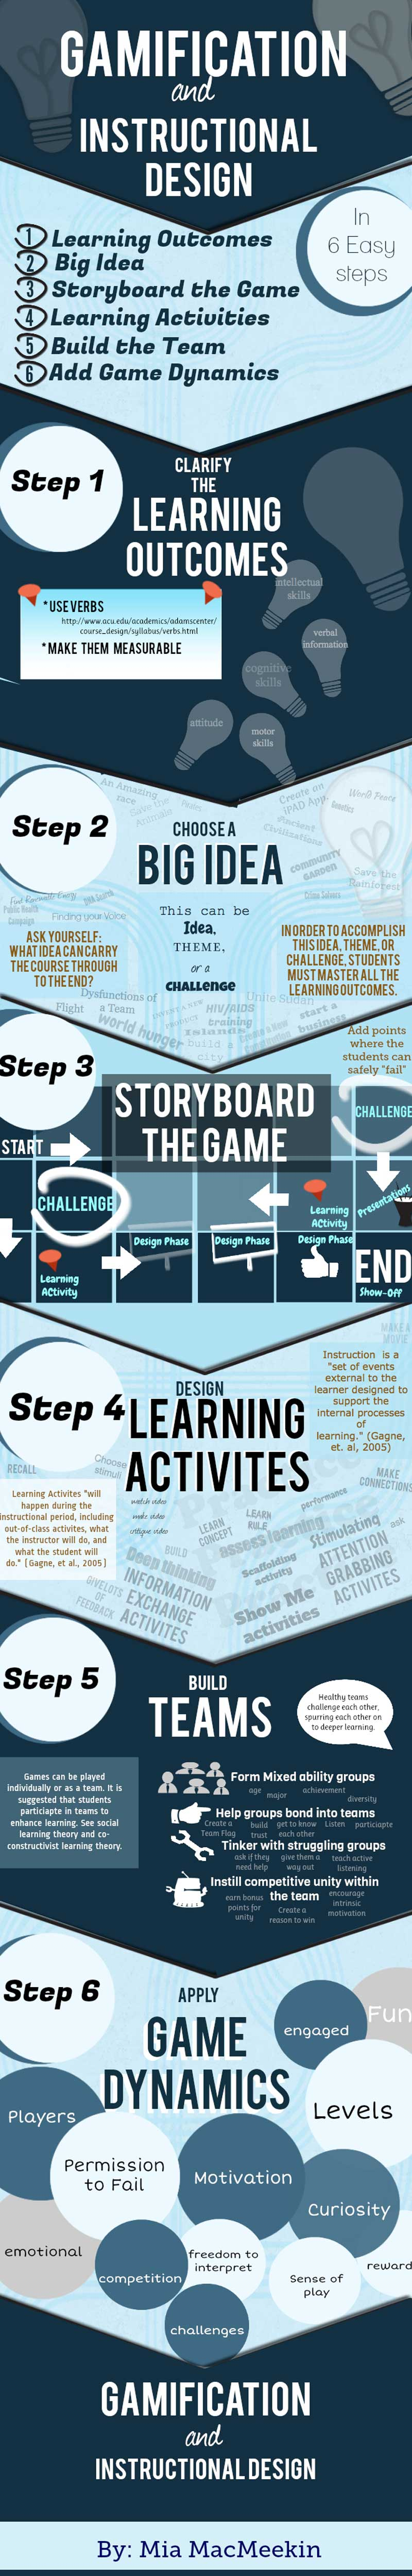 Infographic Gamification and Instructional Design